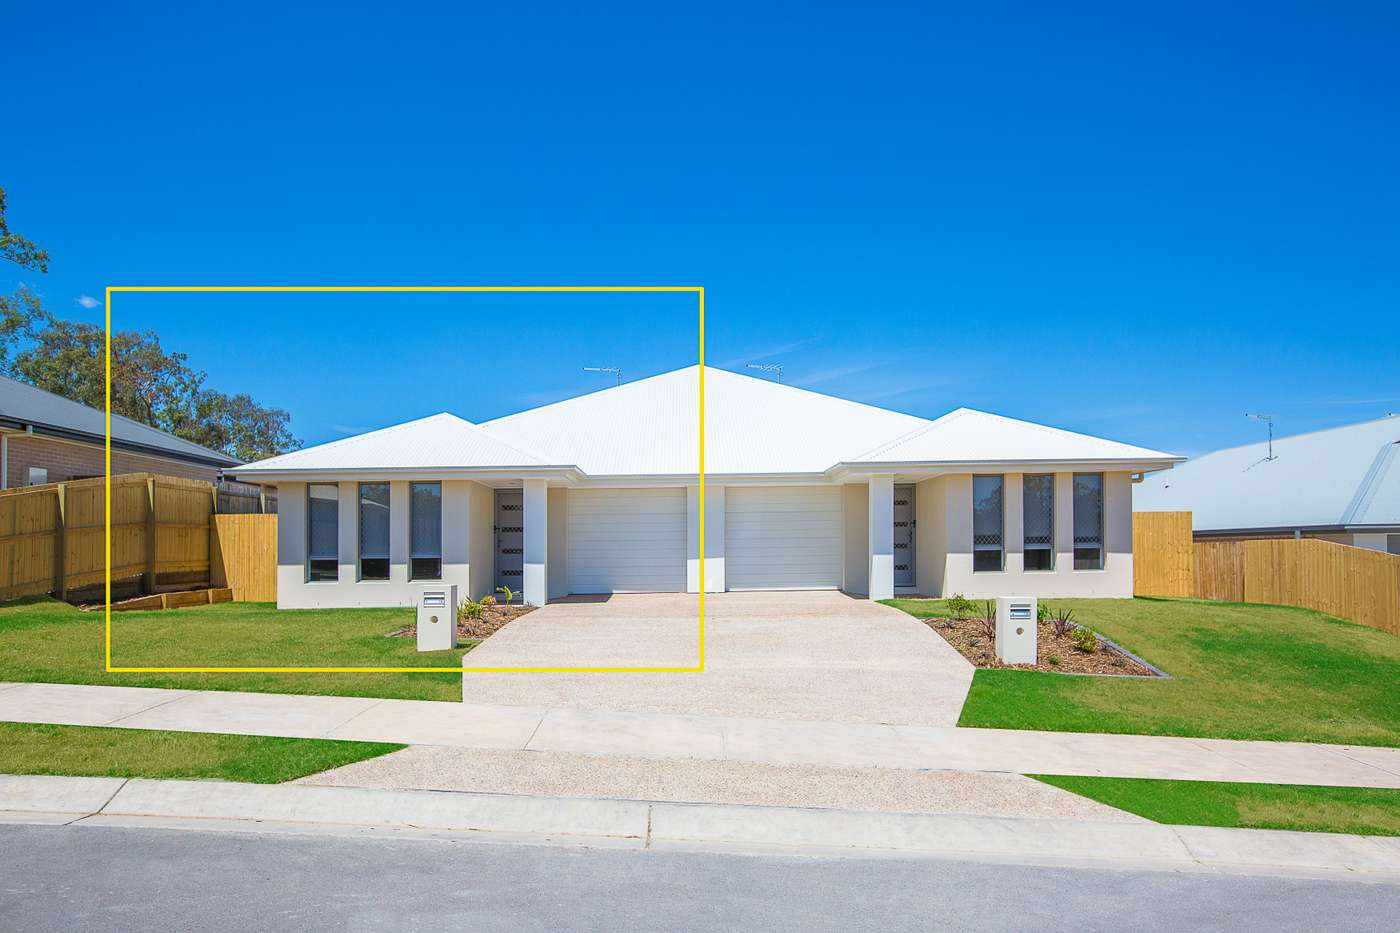 Main view of Homely house listing, 1/15 Arburry Crescent, Brassall, QLD 4305